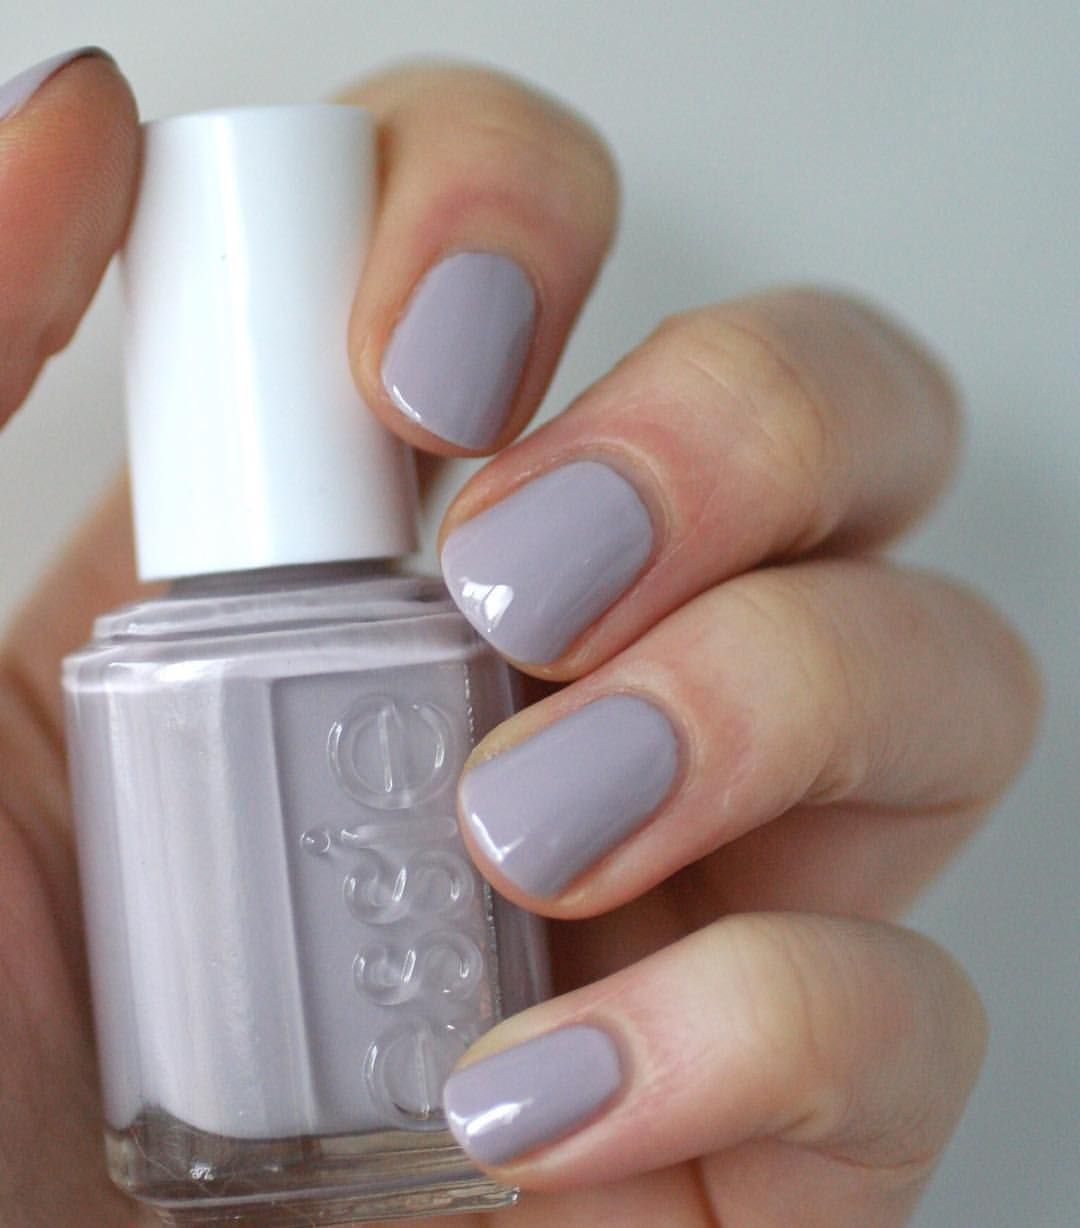 835 Likes 54 Comments Kindra Birss Essie Envy On Instagram Been Feeling In A Grey Mood All Day Wearing Essie Love Acceptance A Greyed Out Lilac Es